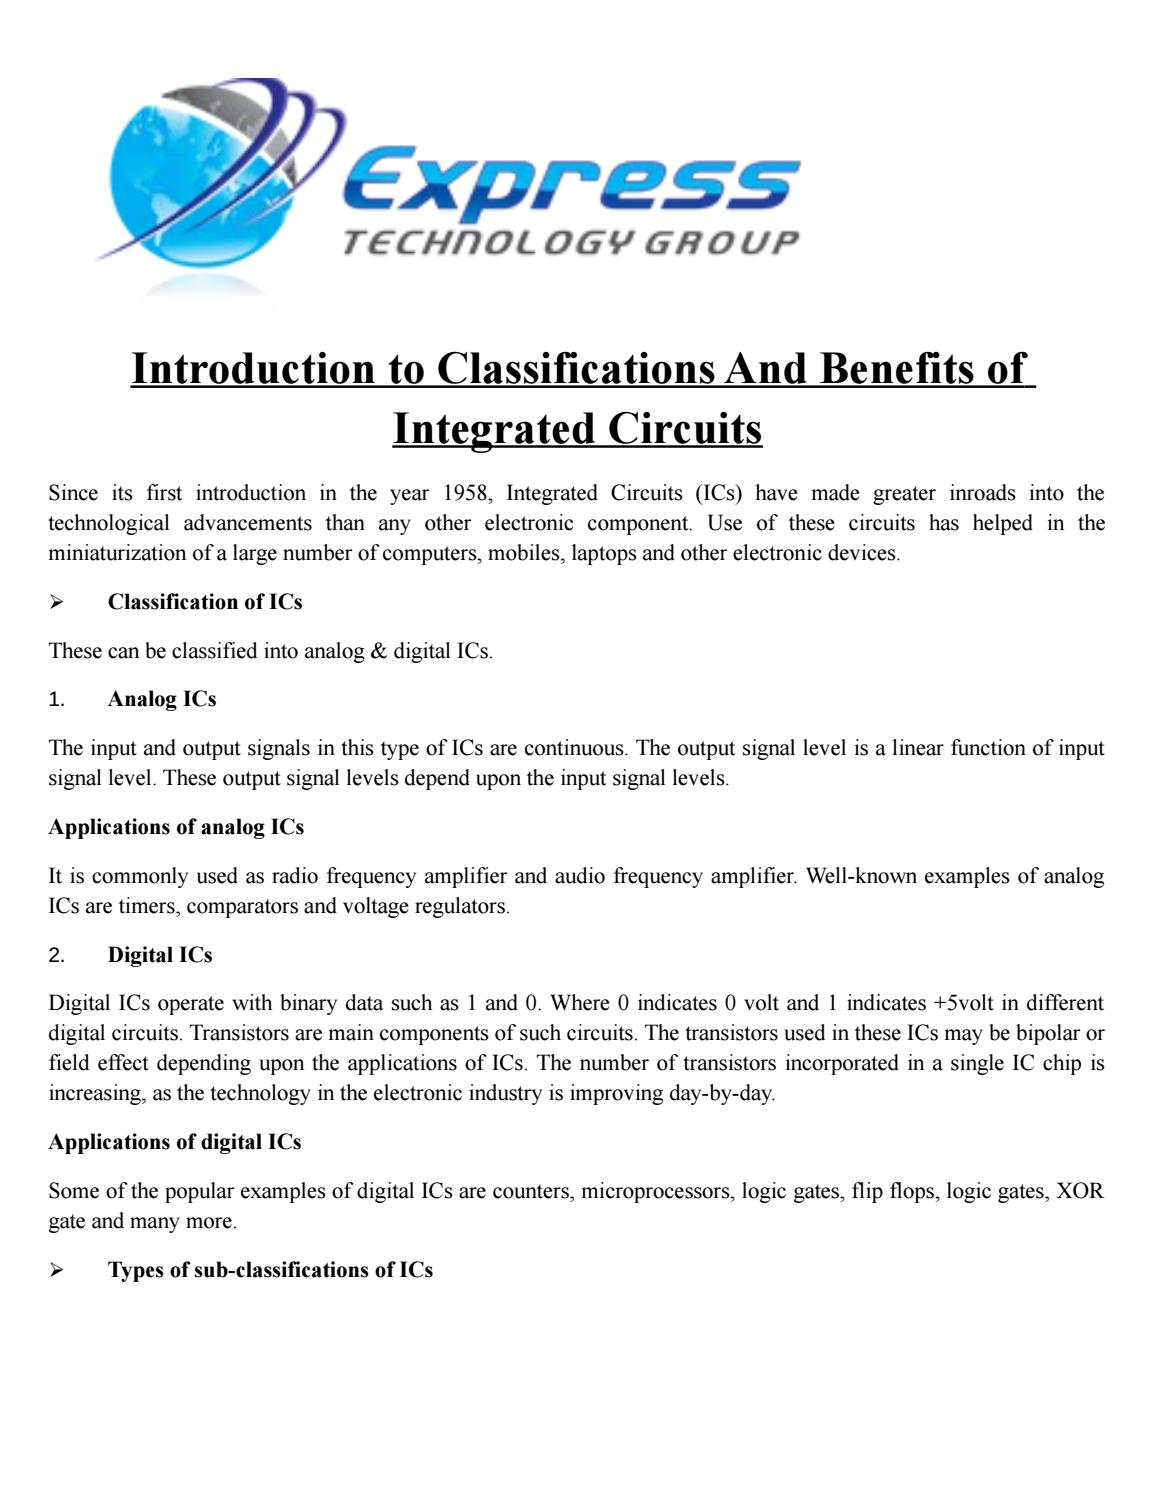 Introduction To Classifications And Benefits Of Integrated Circuits Where Are Used By Express Technology Issuu